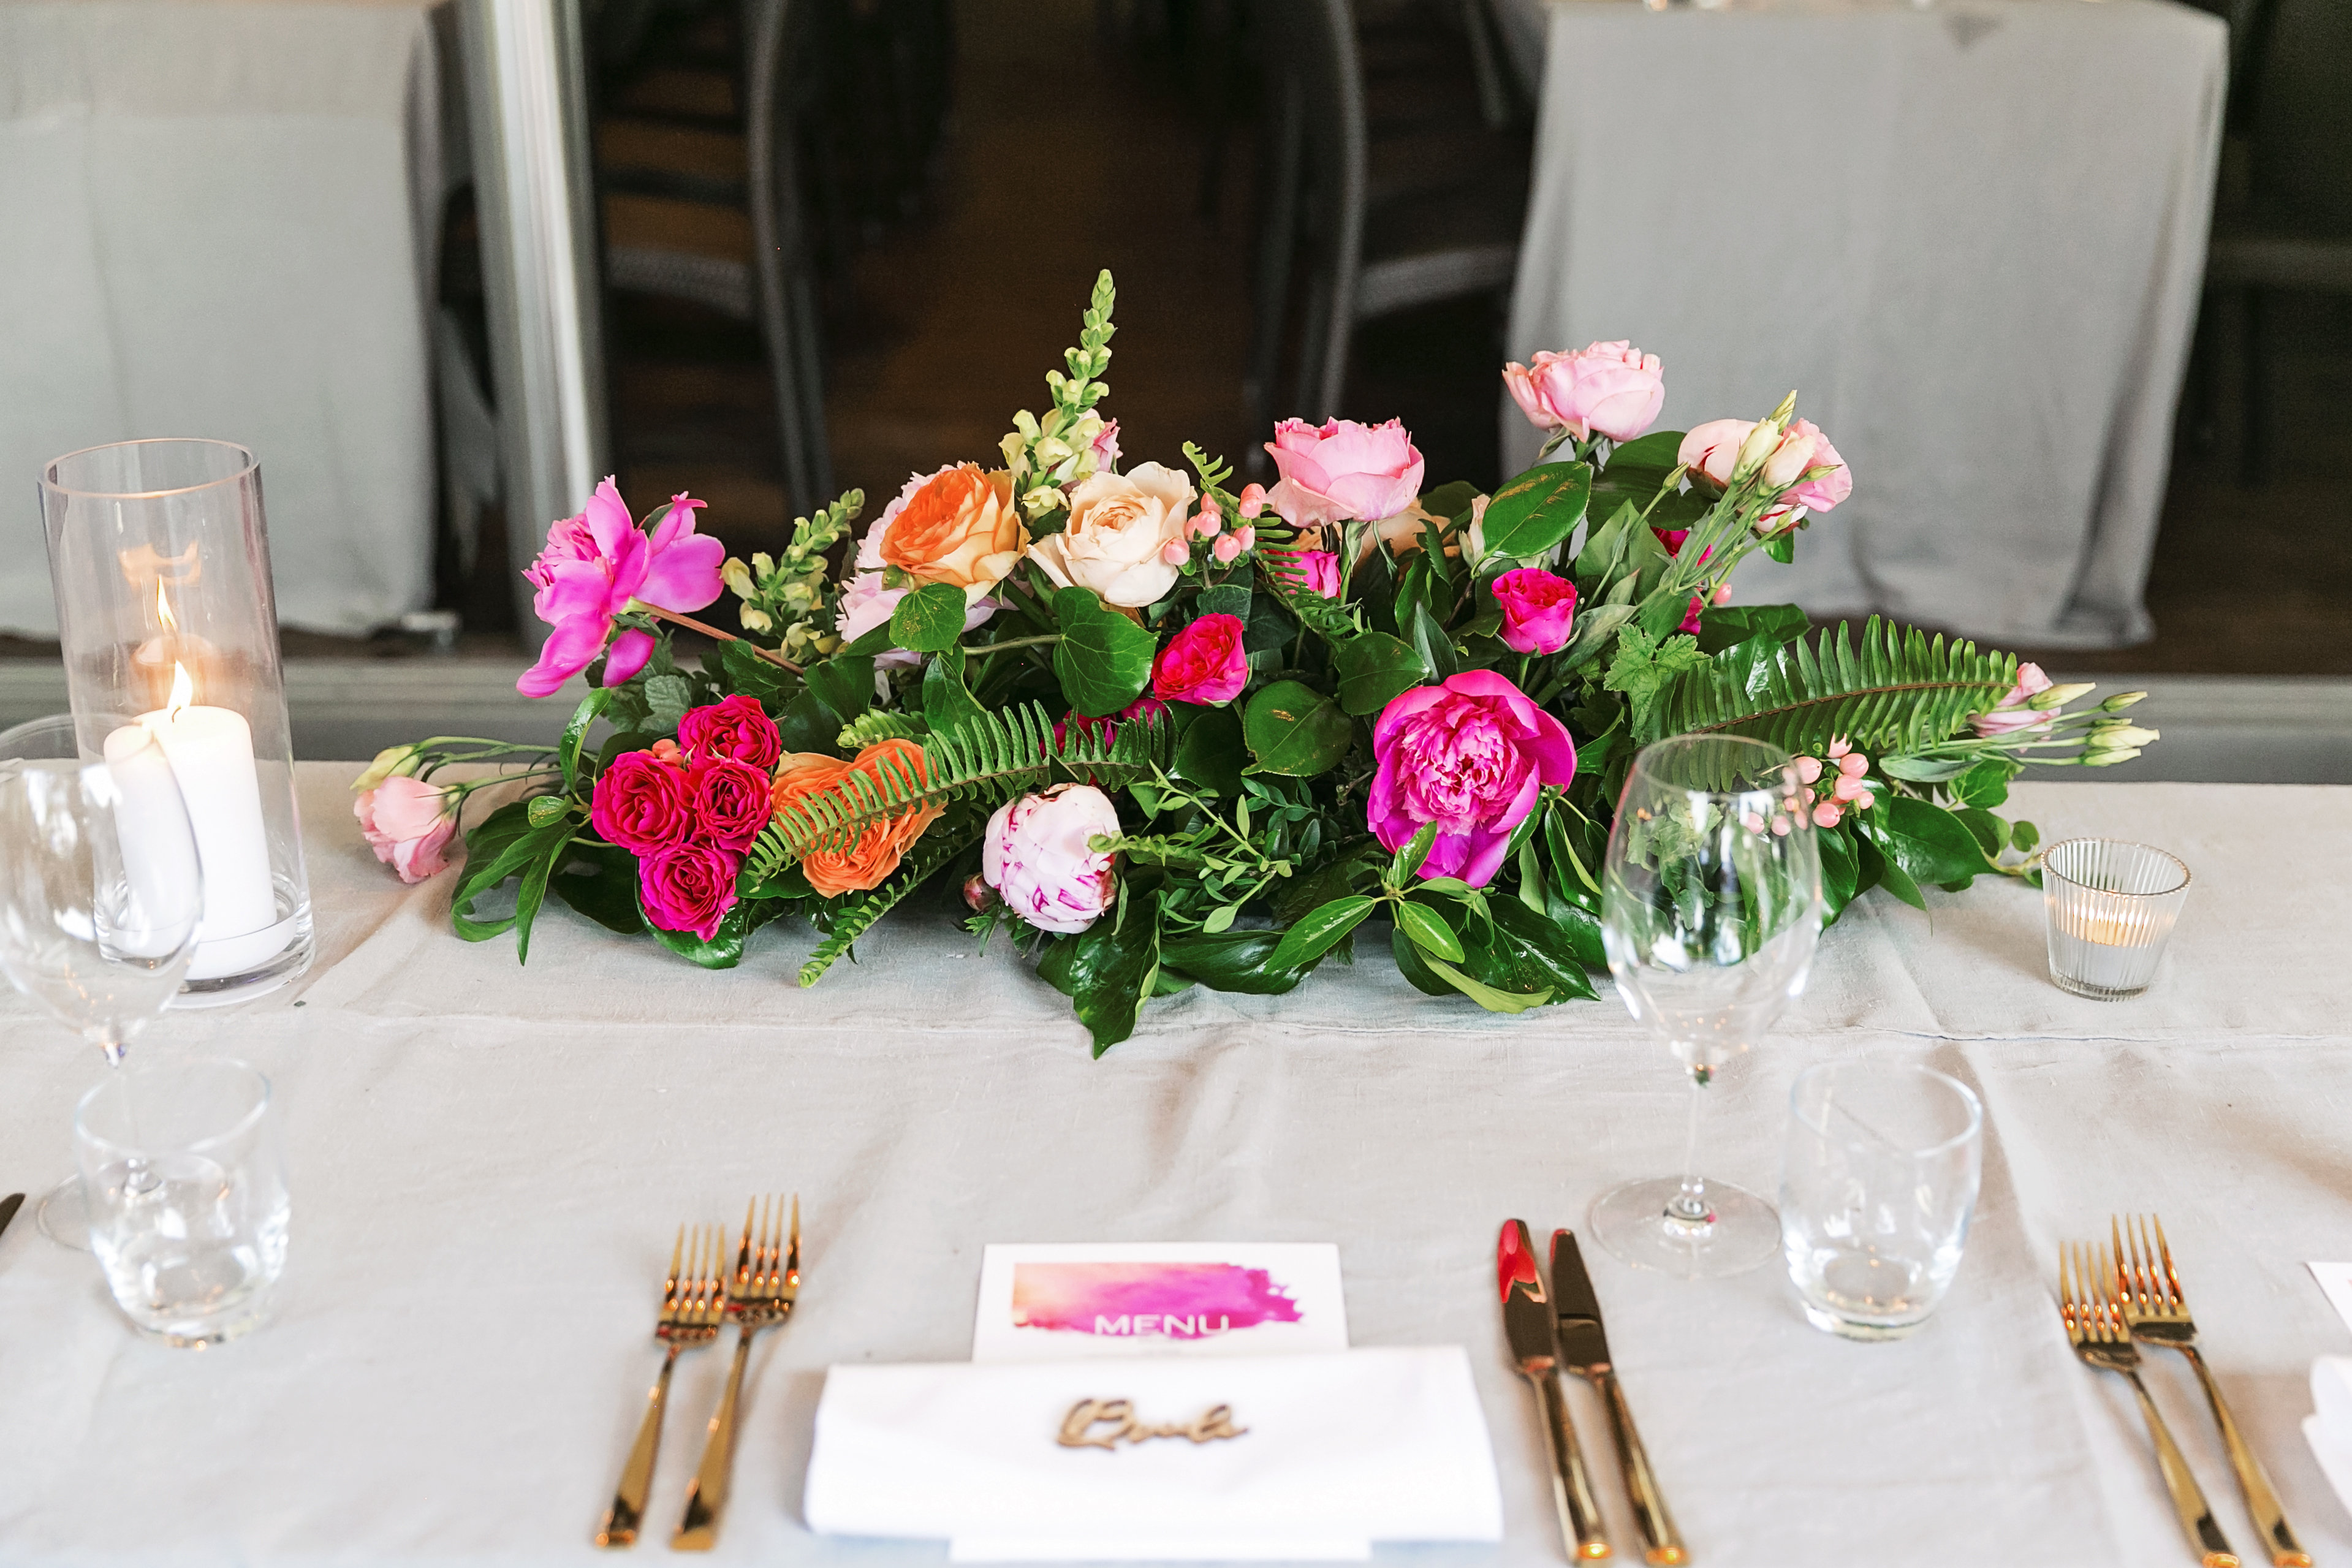 Noosa wedding featuring mordern bright floral table arrangments.